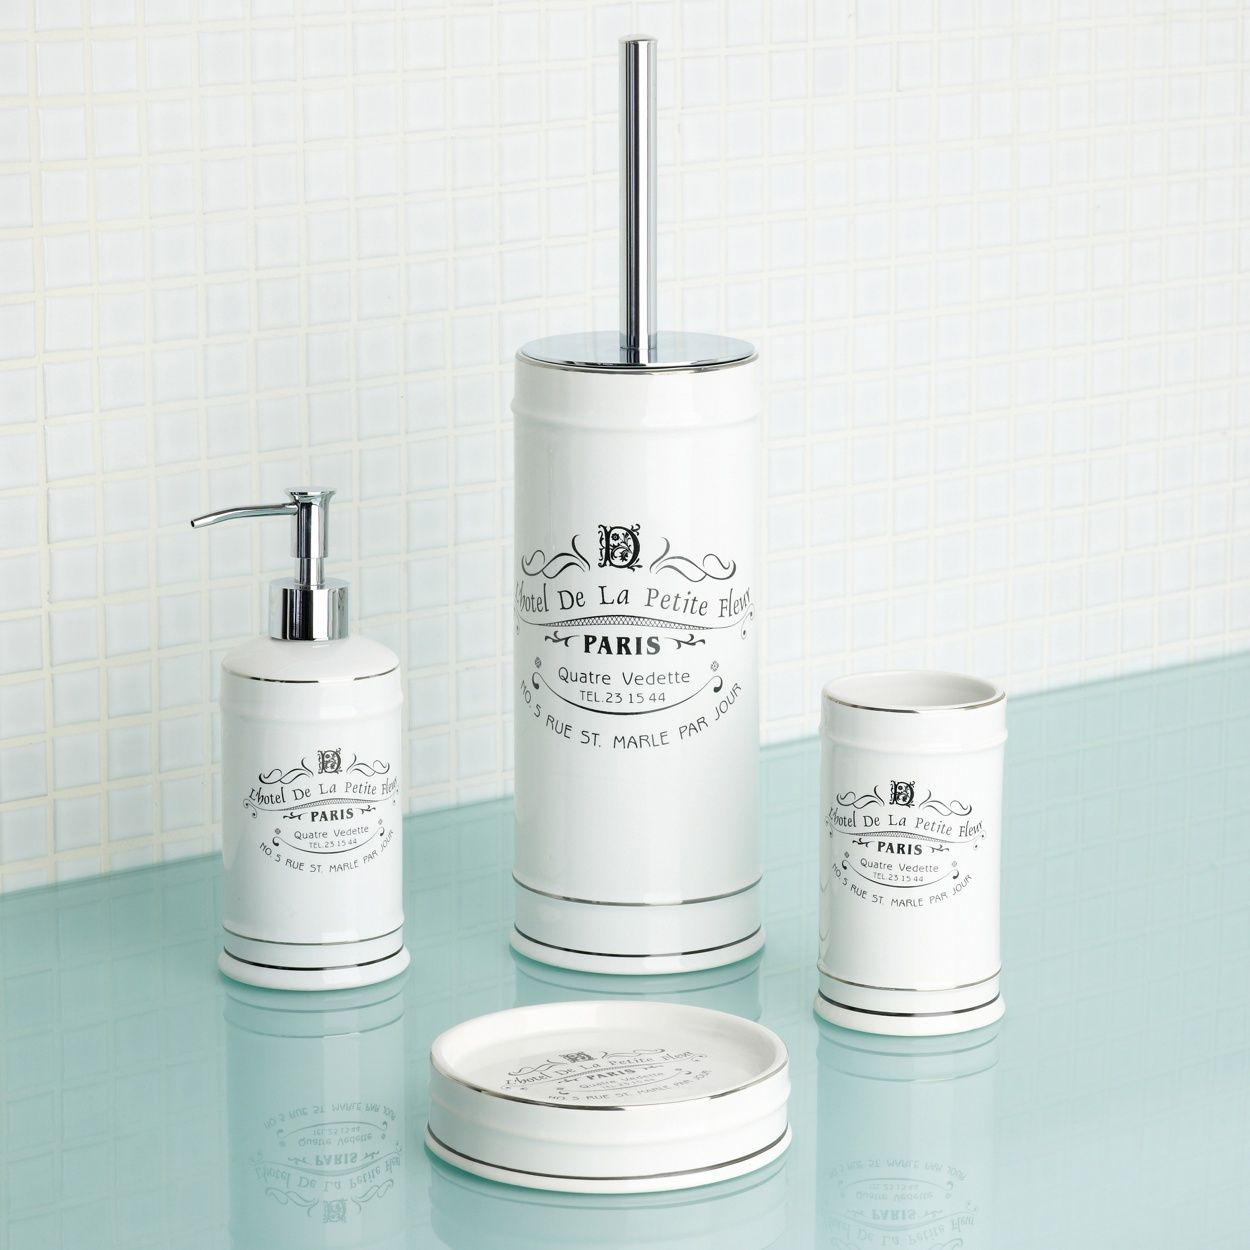 debenhams white paris bathroom accessories- at debenhams: soap